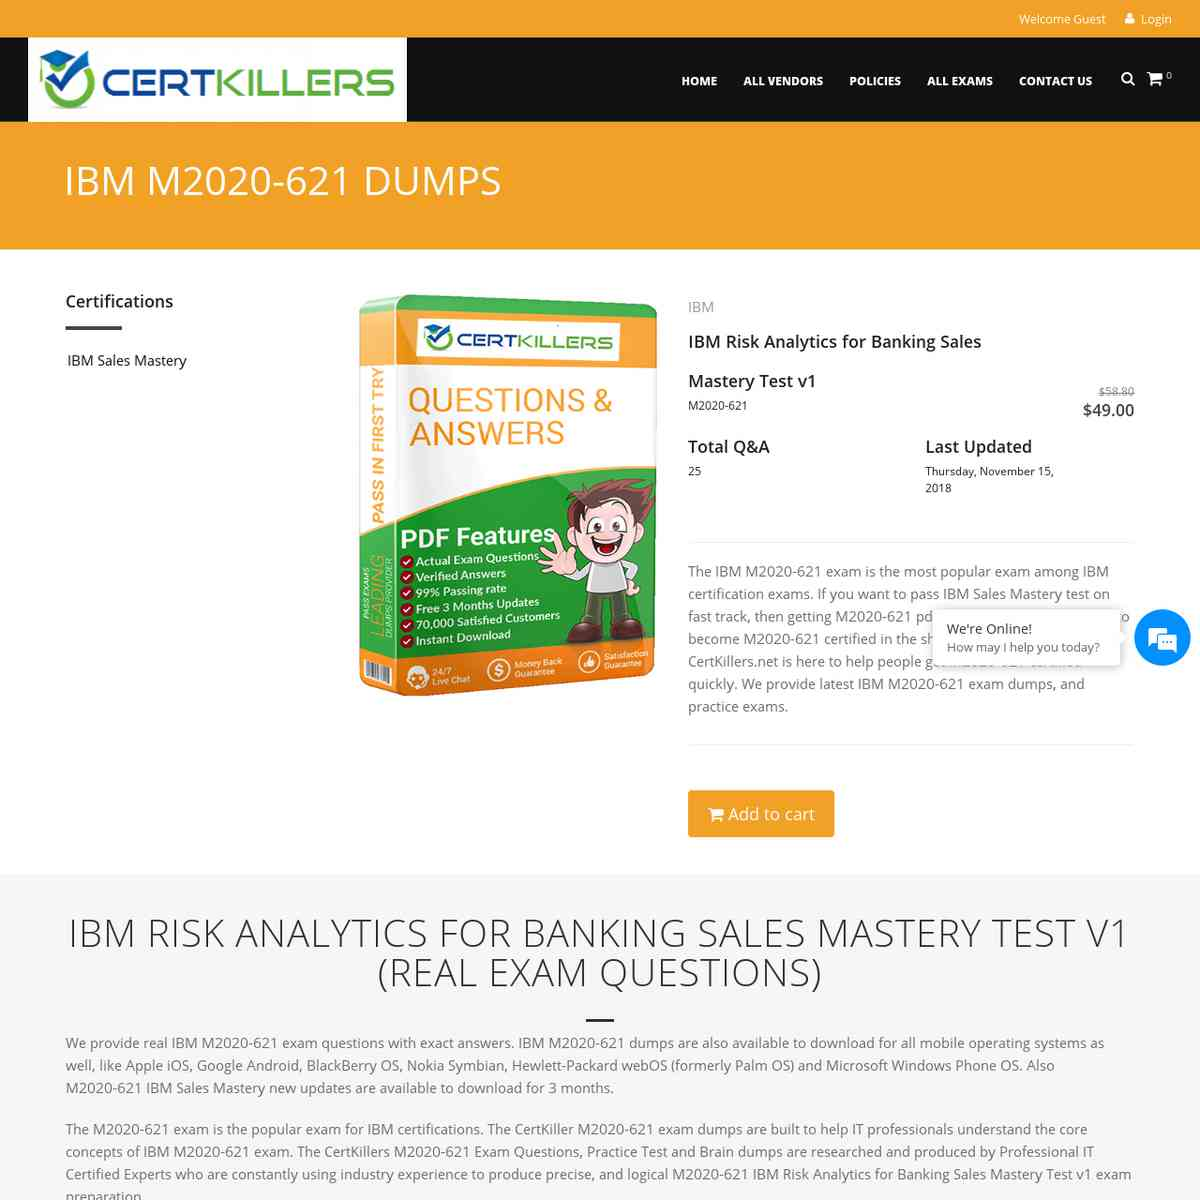 CertKillers.net Q&A of M2020-621 will surely help you pass | practice test | braindumps